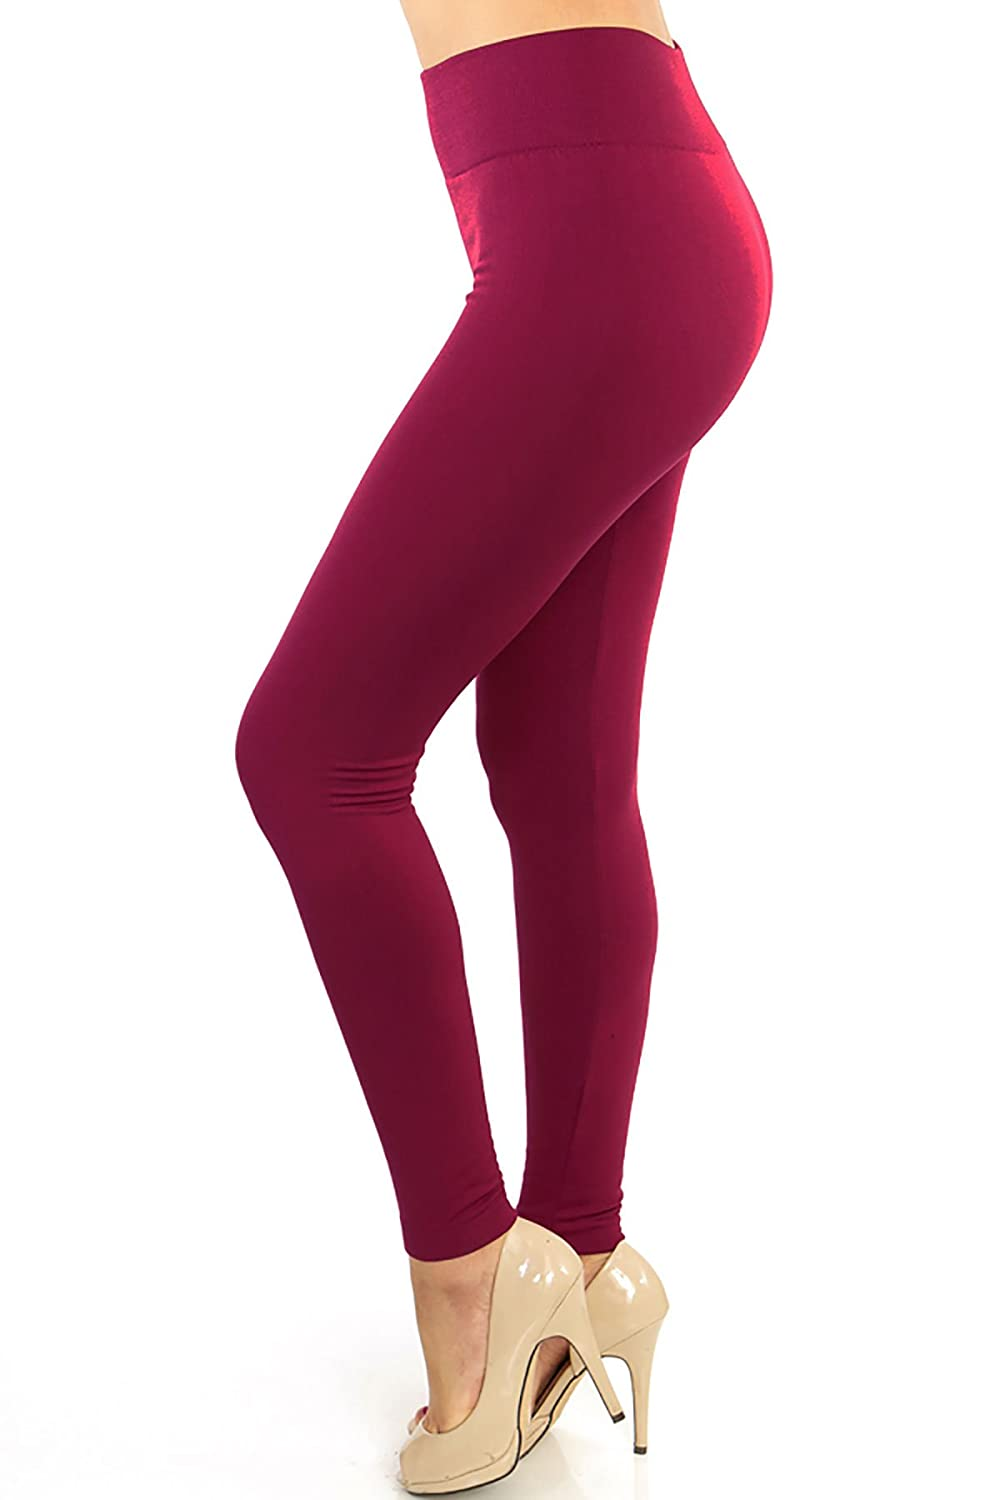 Women/'s Plus Size Solid Burgundy Color Brushed Full Length Leggings SOL01R